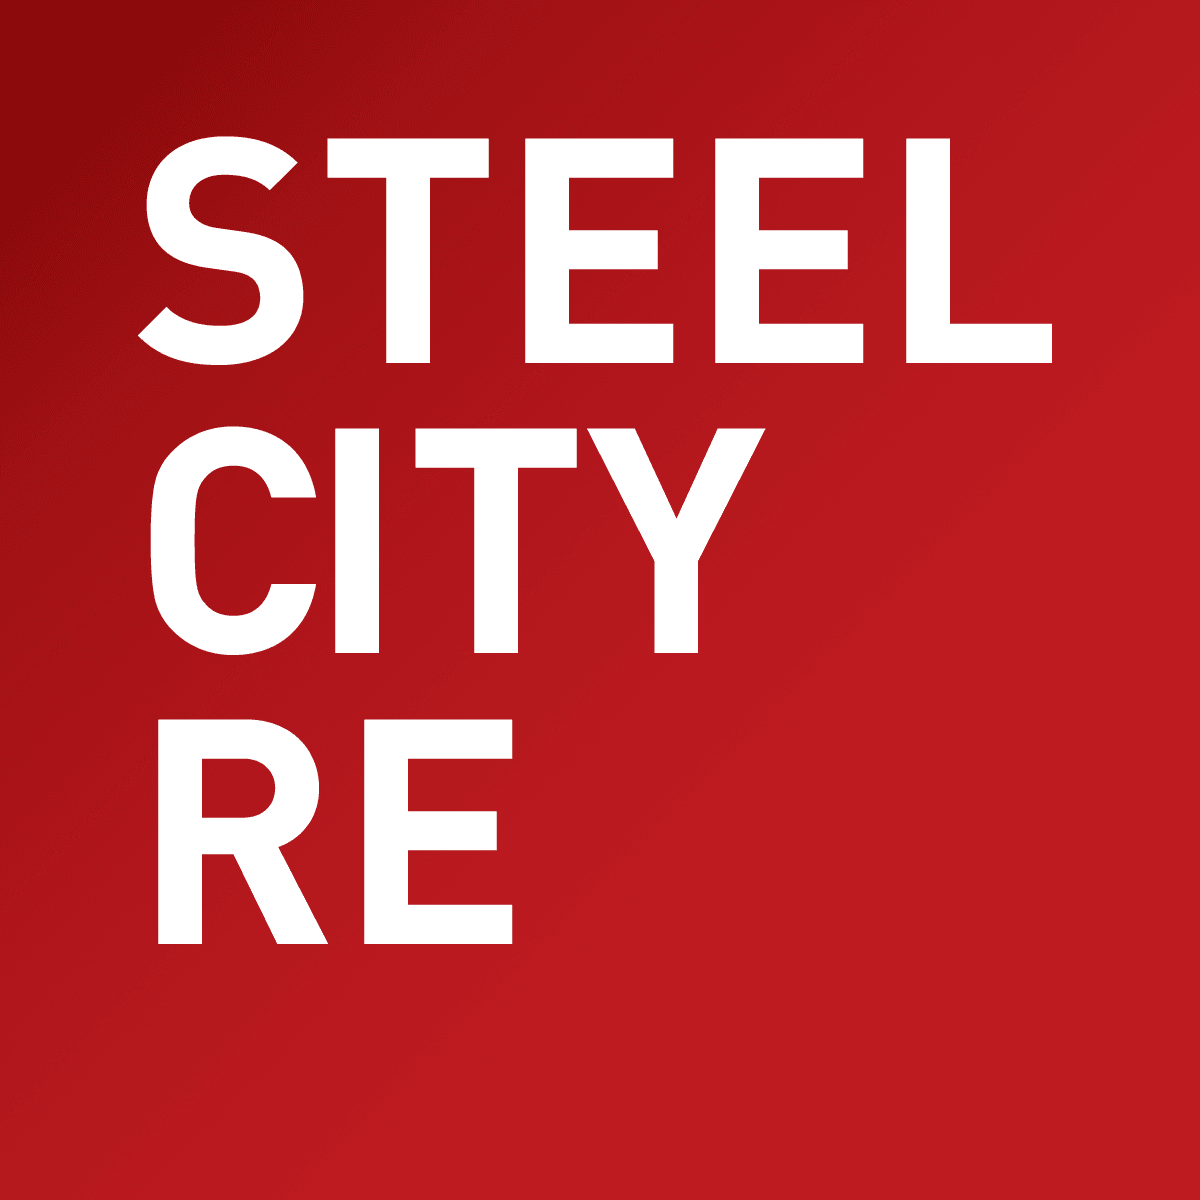 Steel City Re